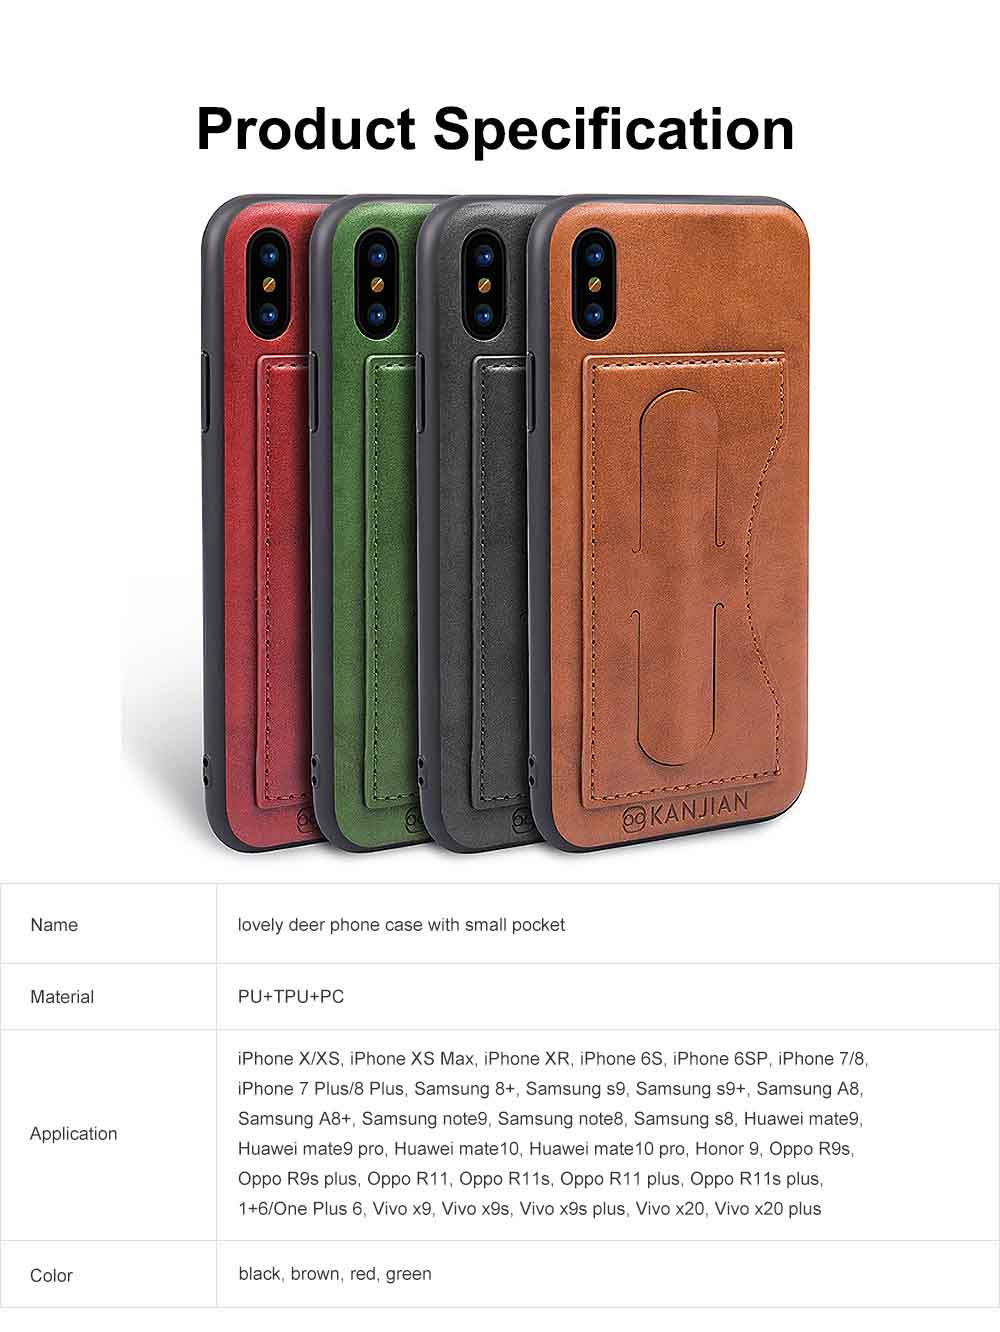 Luxury Soft Leather Phone Case, Minimalist High-end Business Phone Case for iPhone, Samsung, Huawei, Vivo, Oppo 7